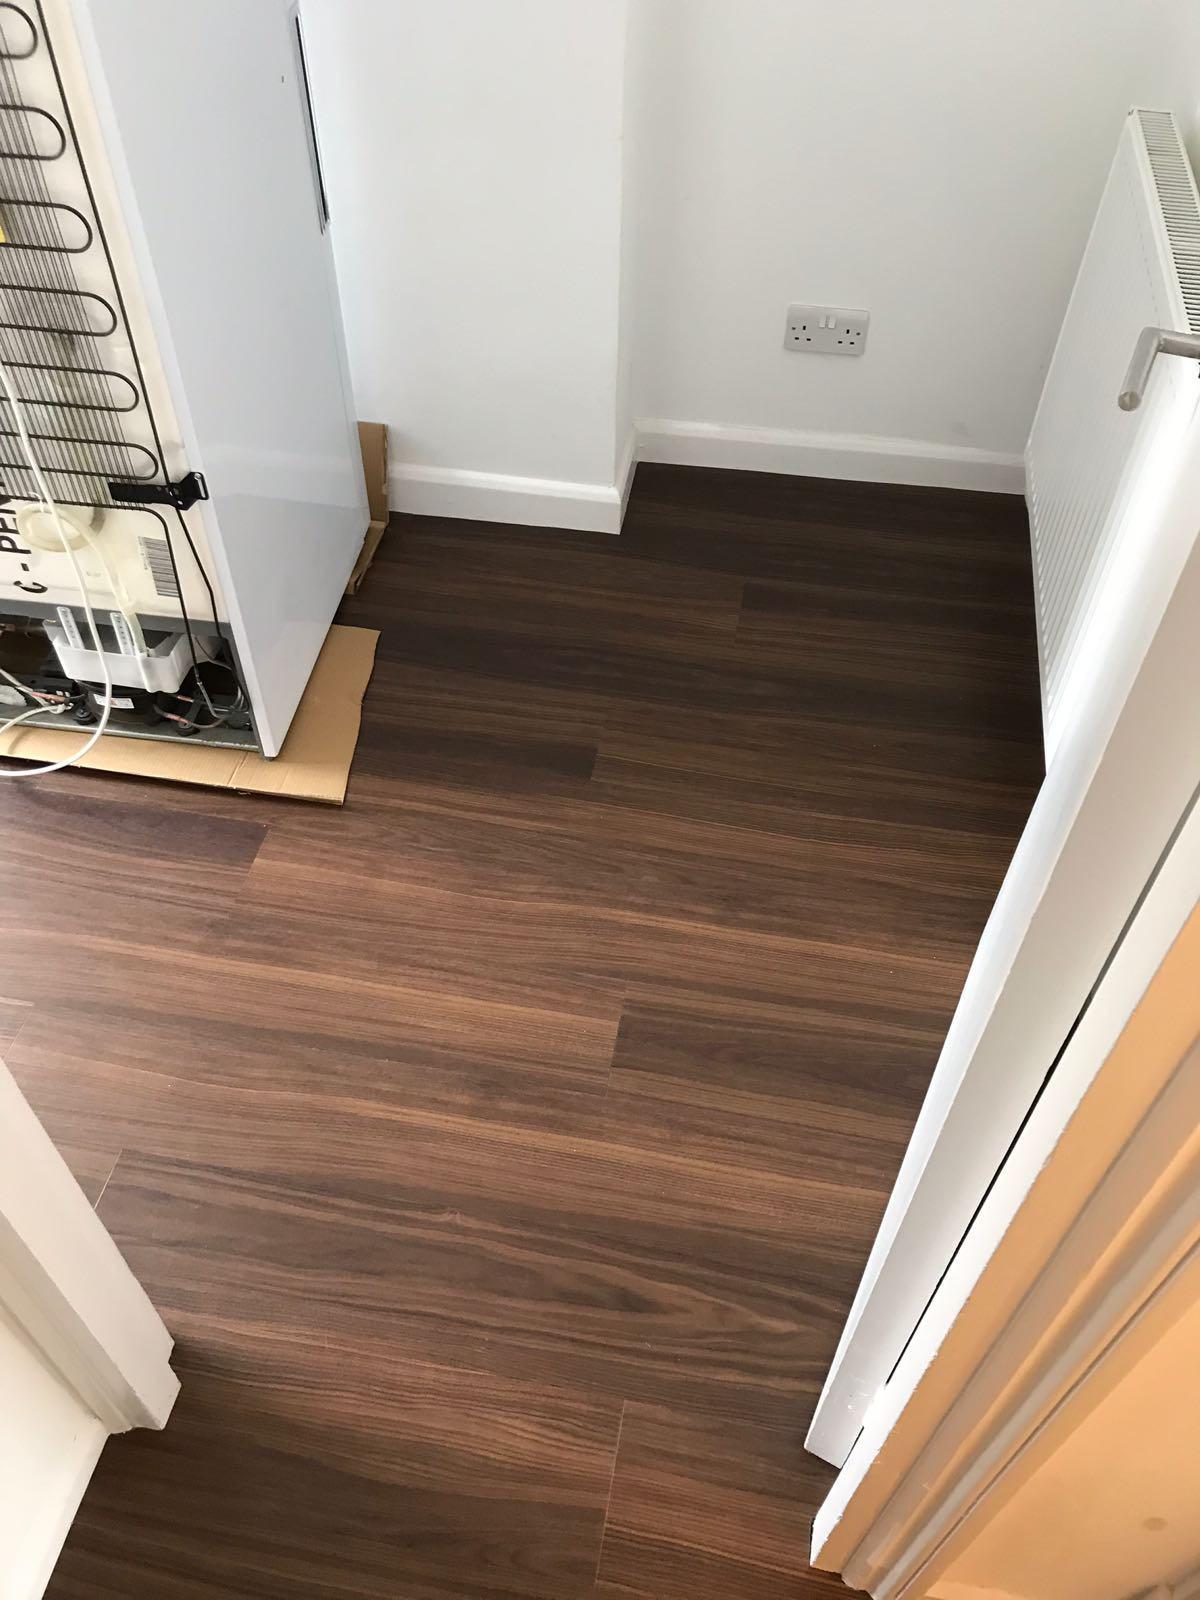 2018-04-24_Amtico Flooring Installed In Chelsea Residence (7)